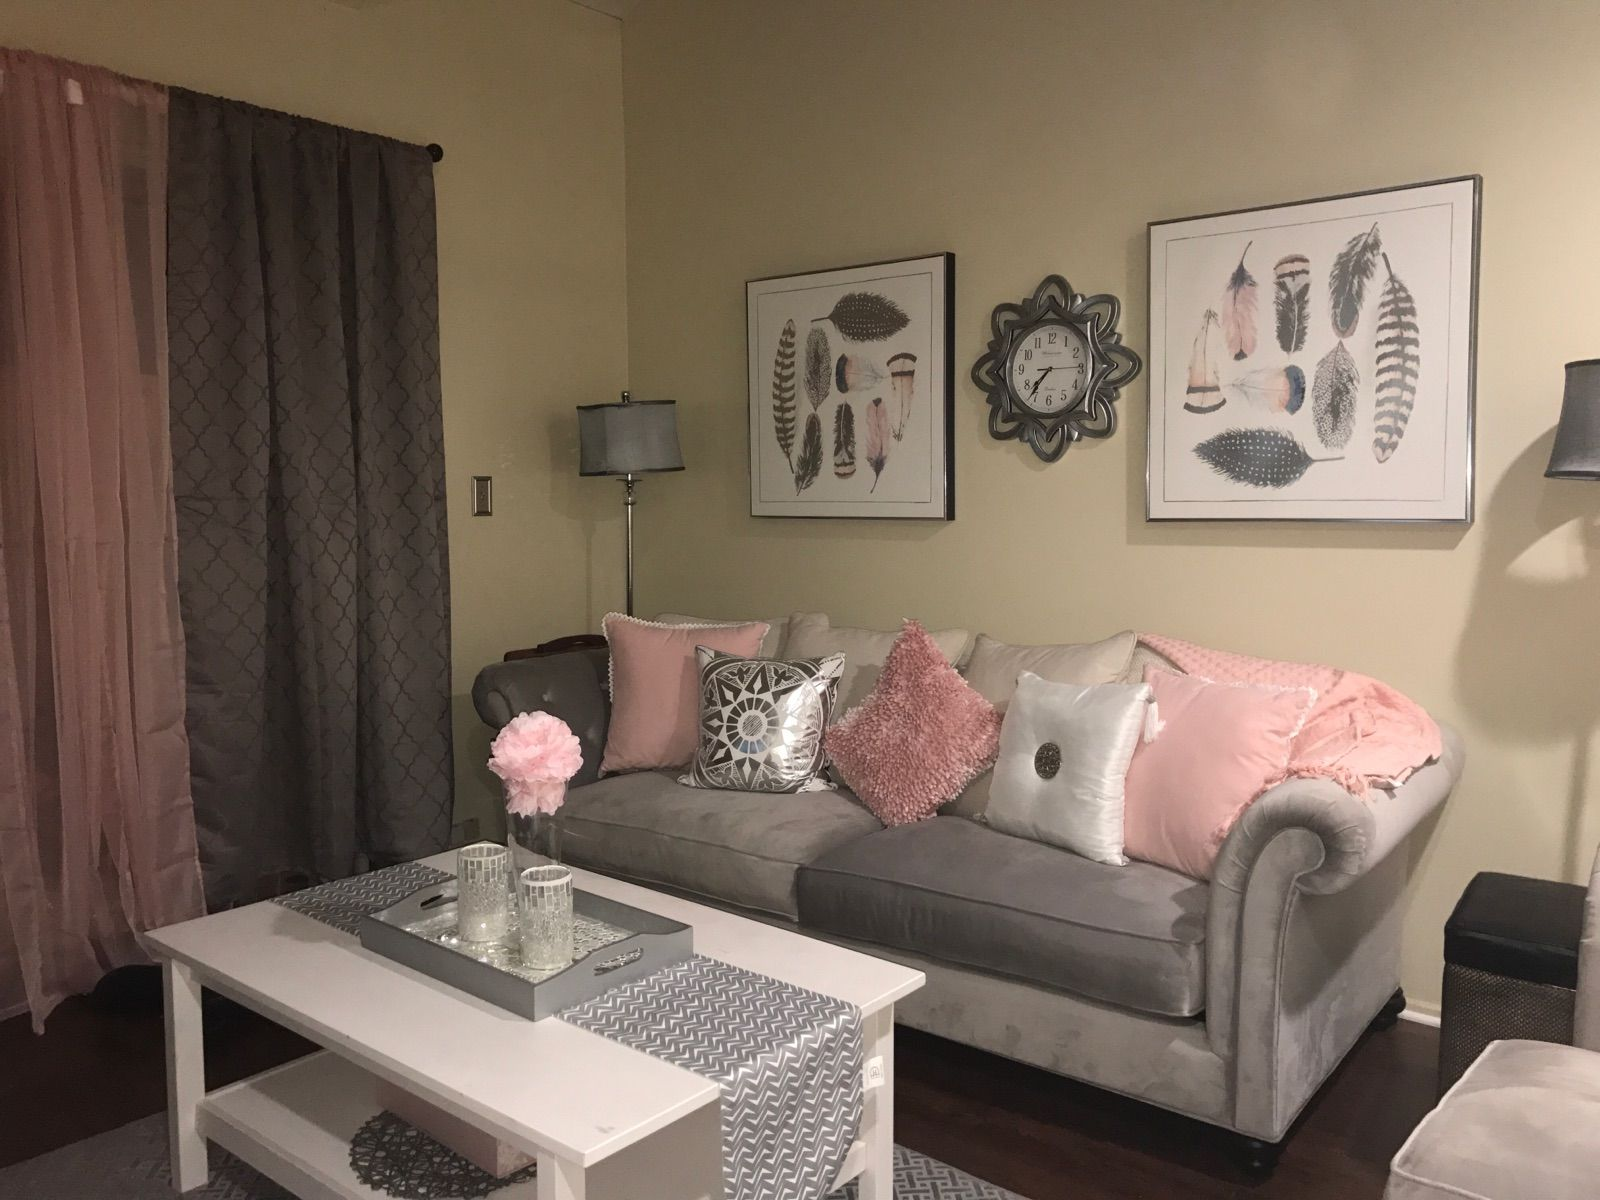 Pink and gray living room (With images) | Living room grey ...